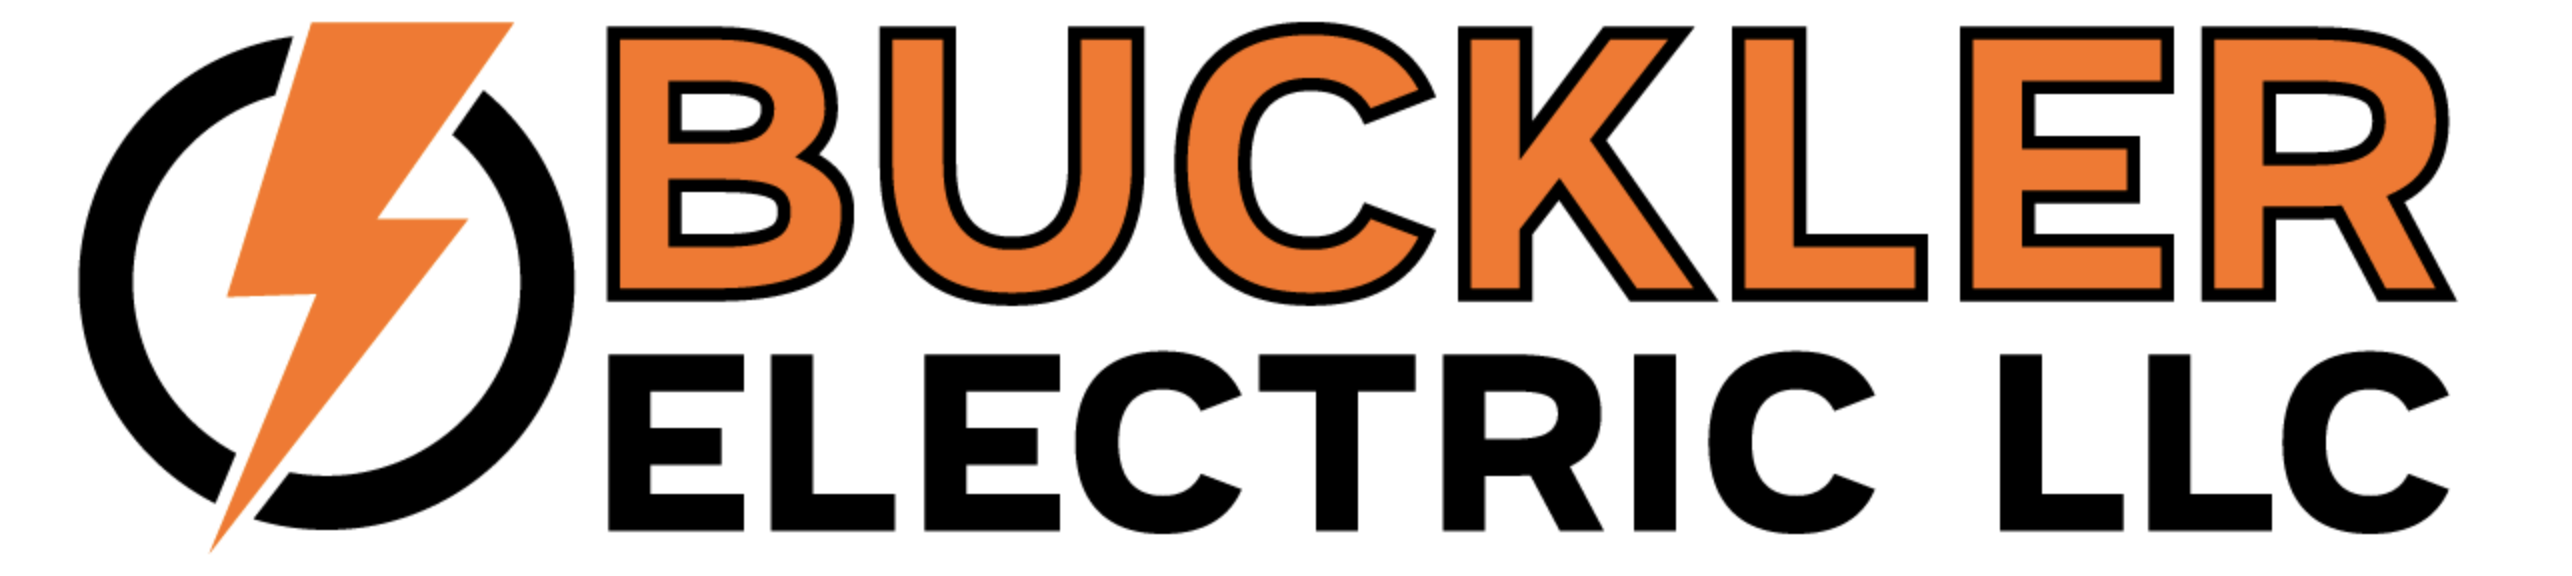 Buckler Electric Logo New